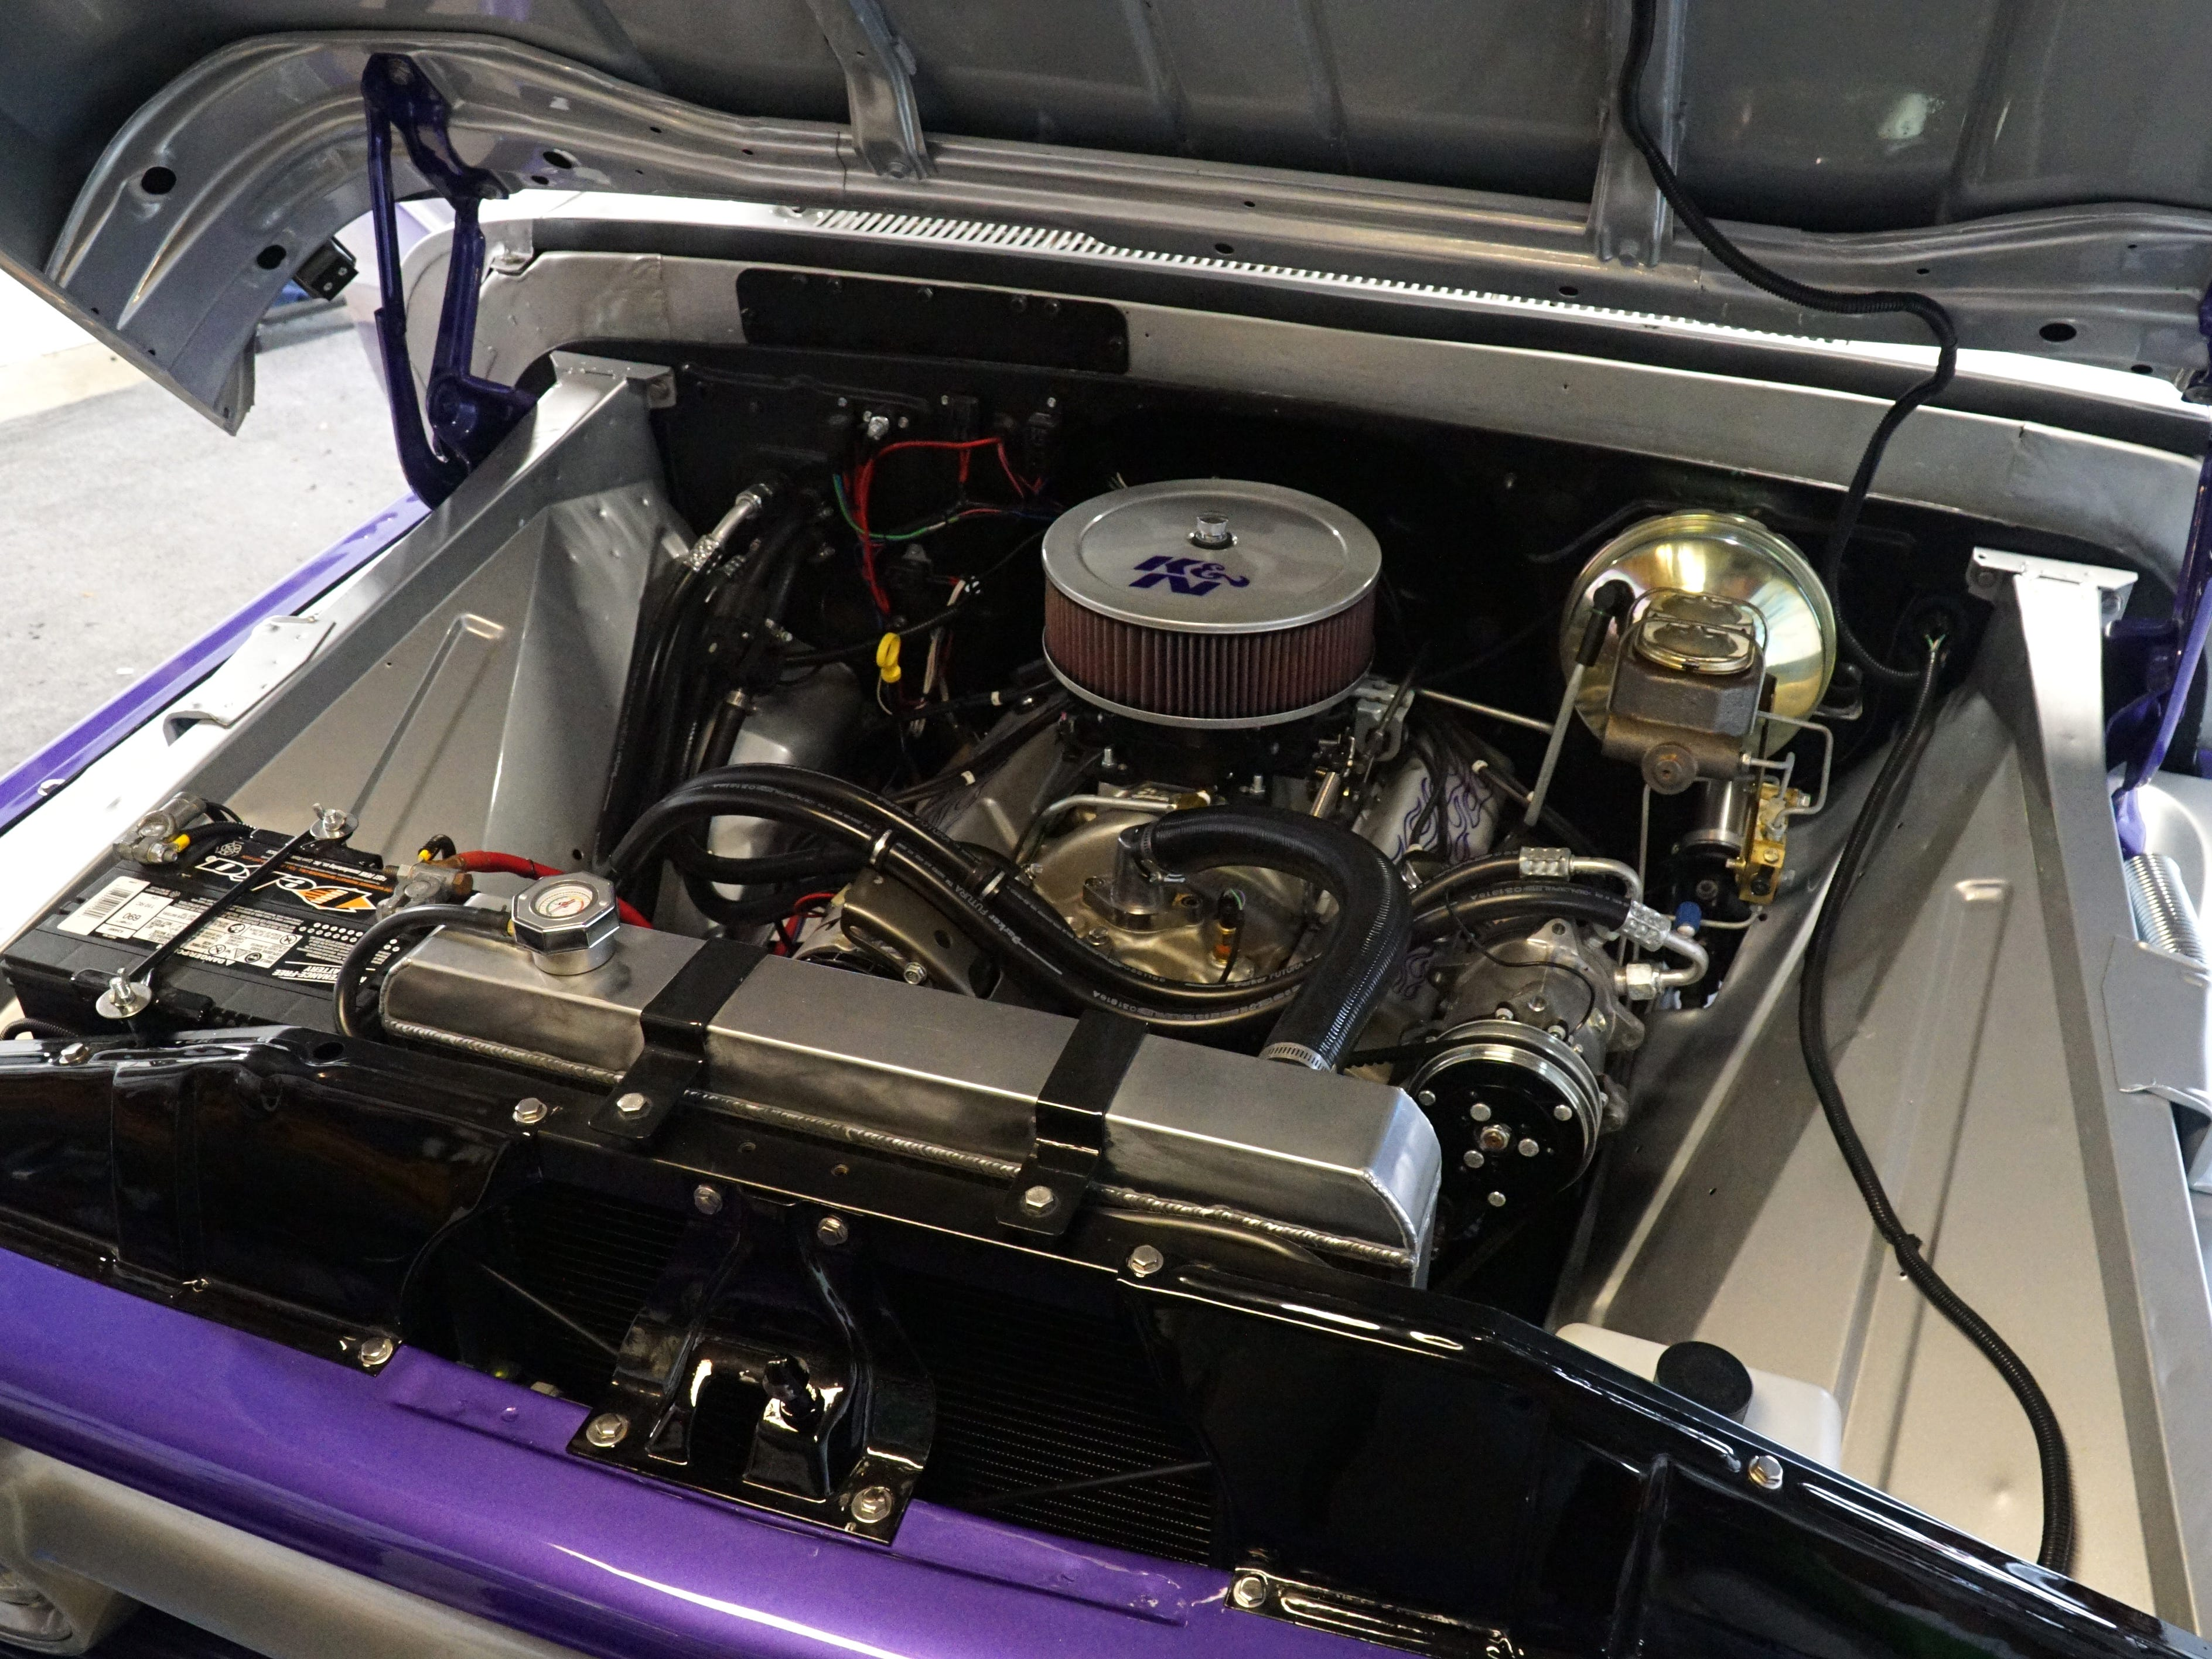 A look at the engine compartment of Coleman's '65 GMC.